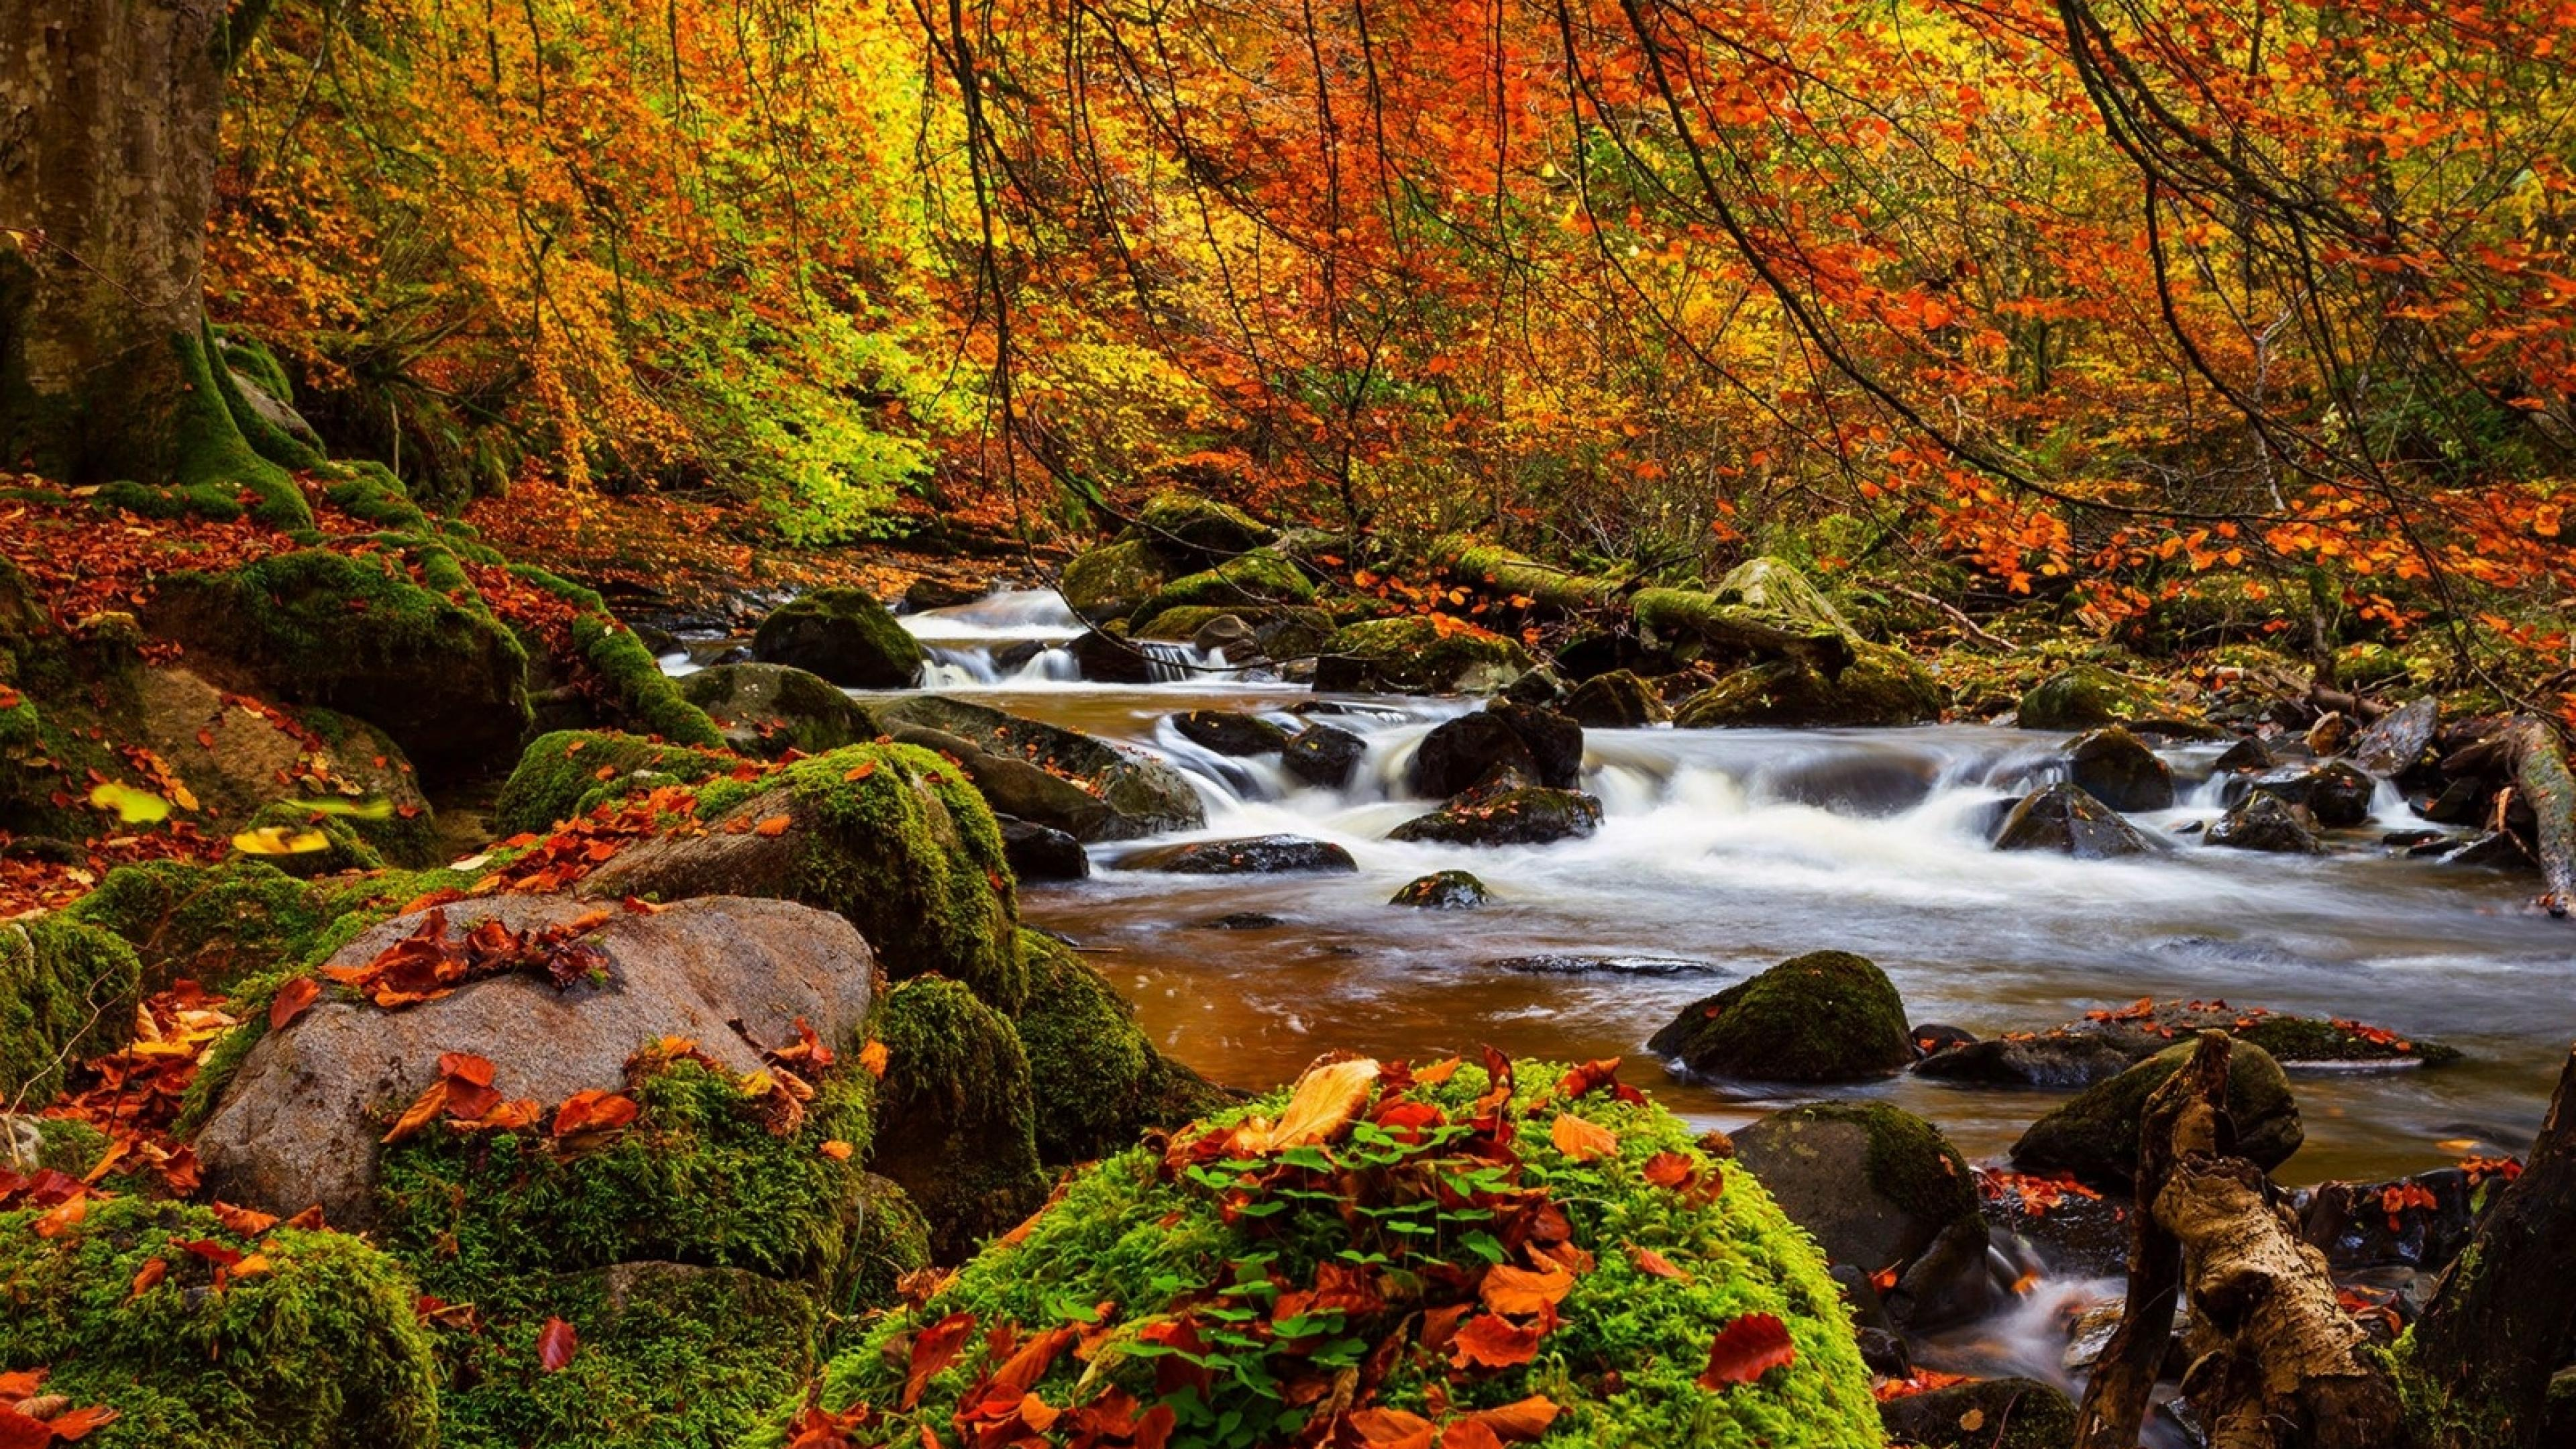 Fall Forest Stream Stones Moss Trees Ultra 3840x2160